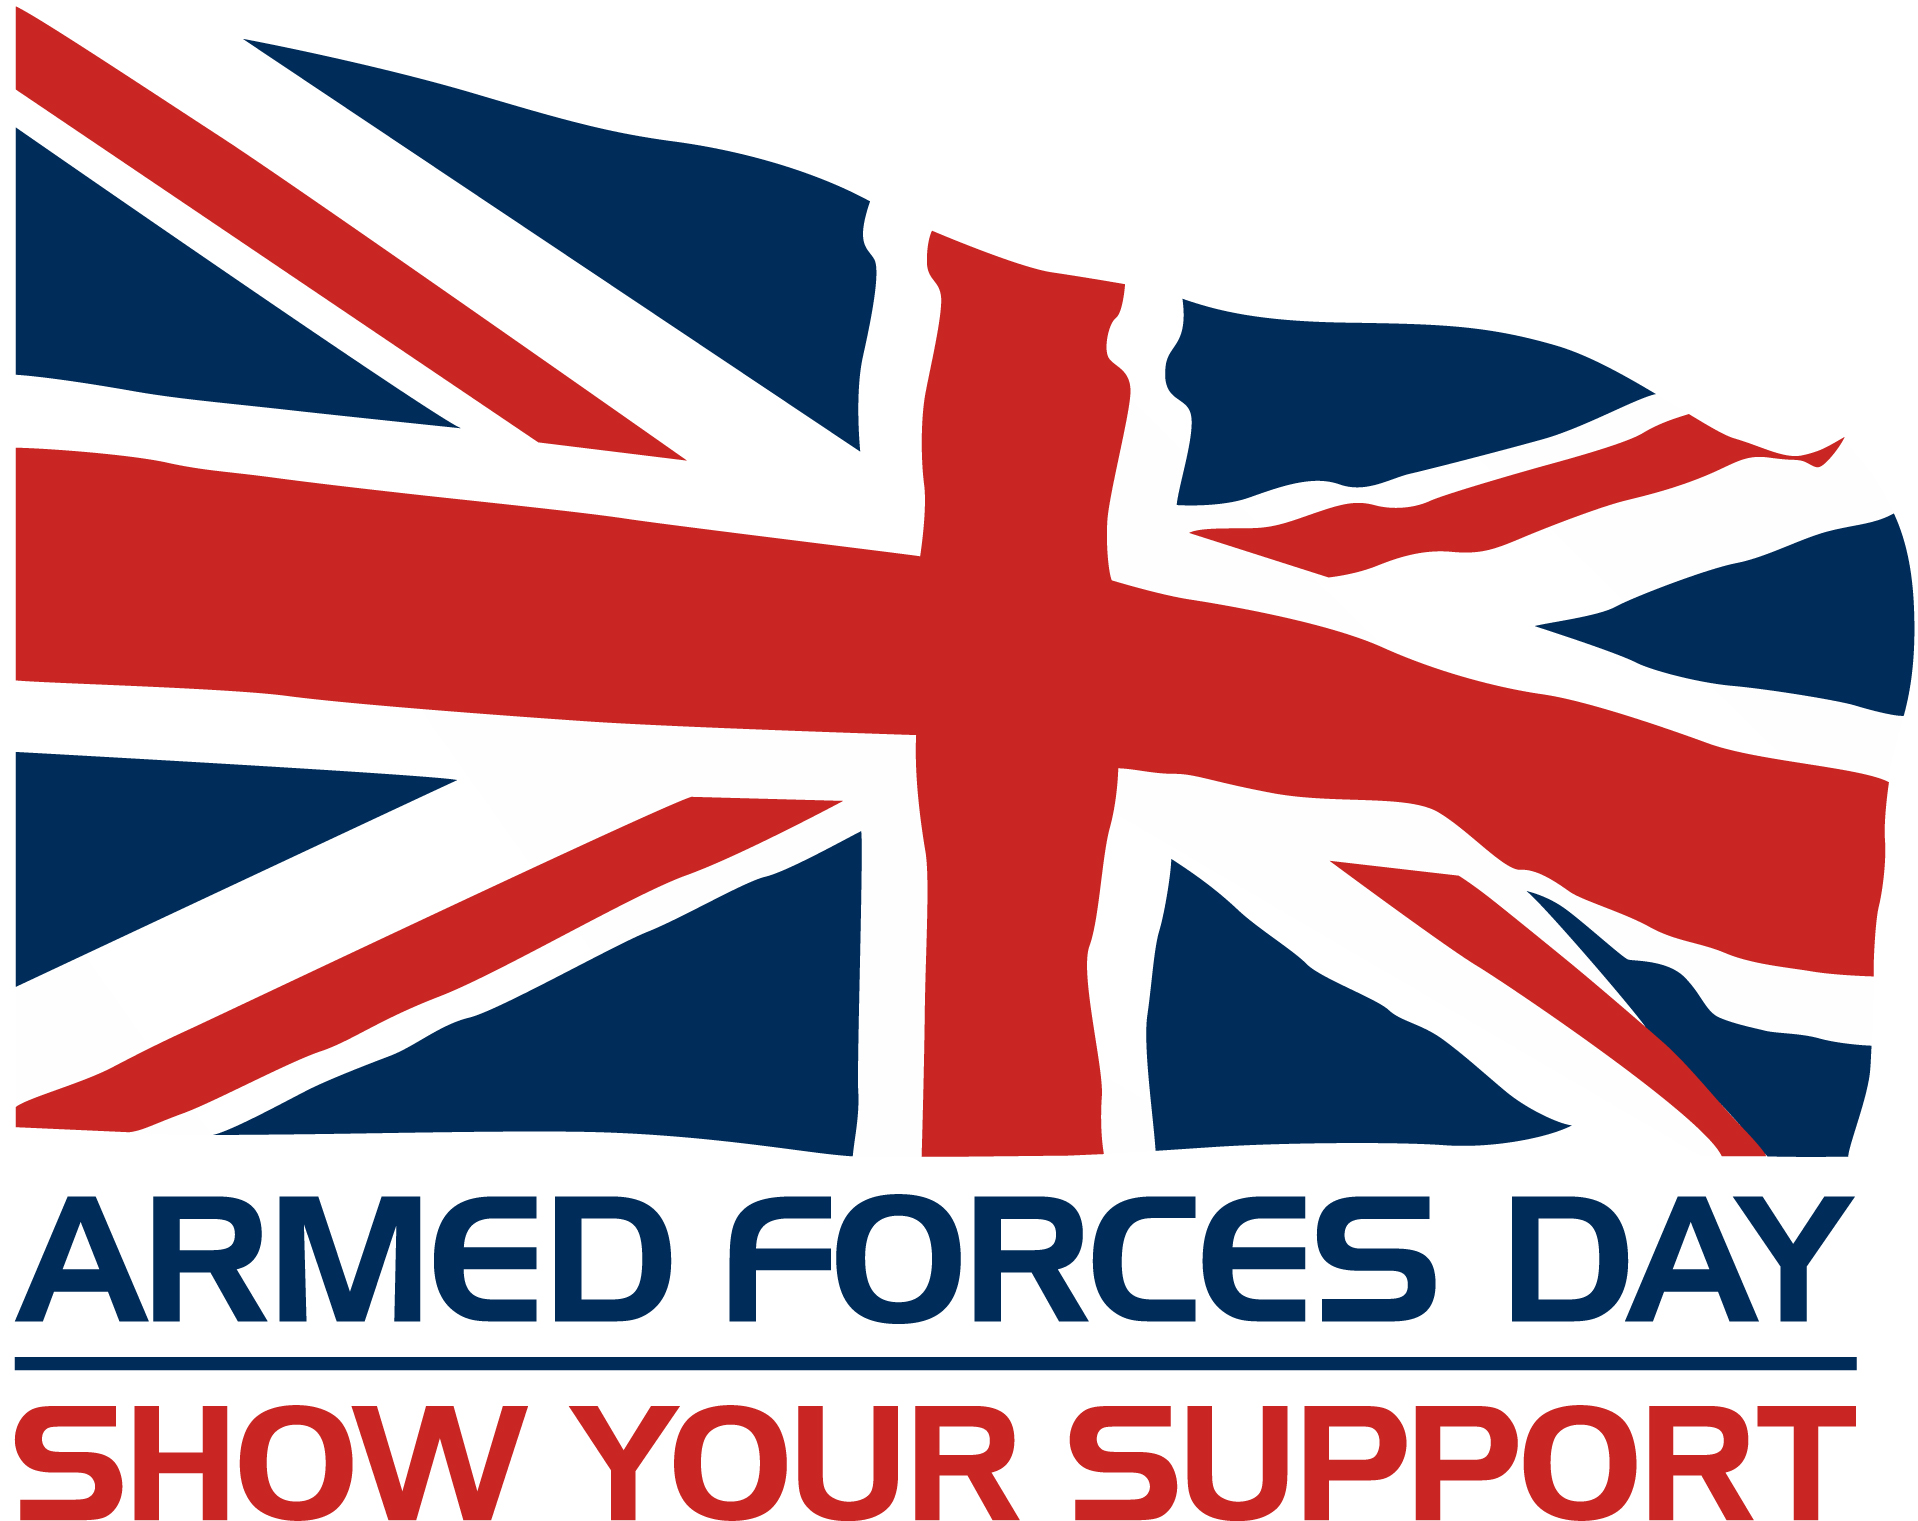 The Armed Forces Day logo